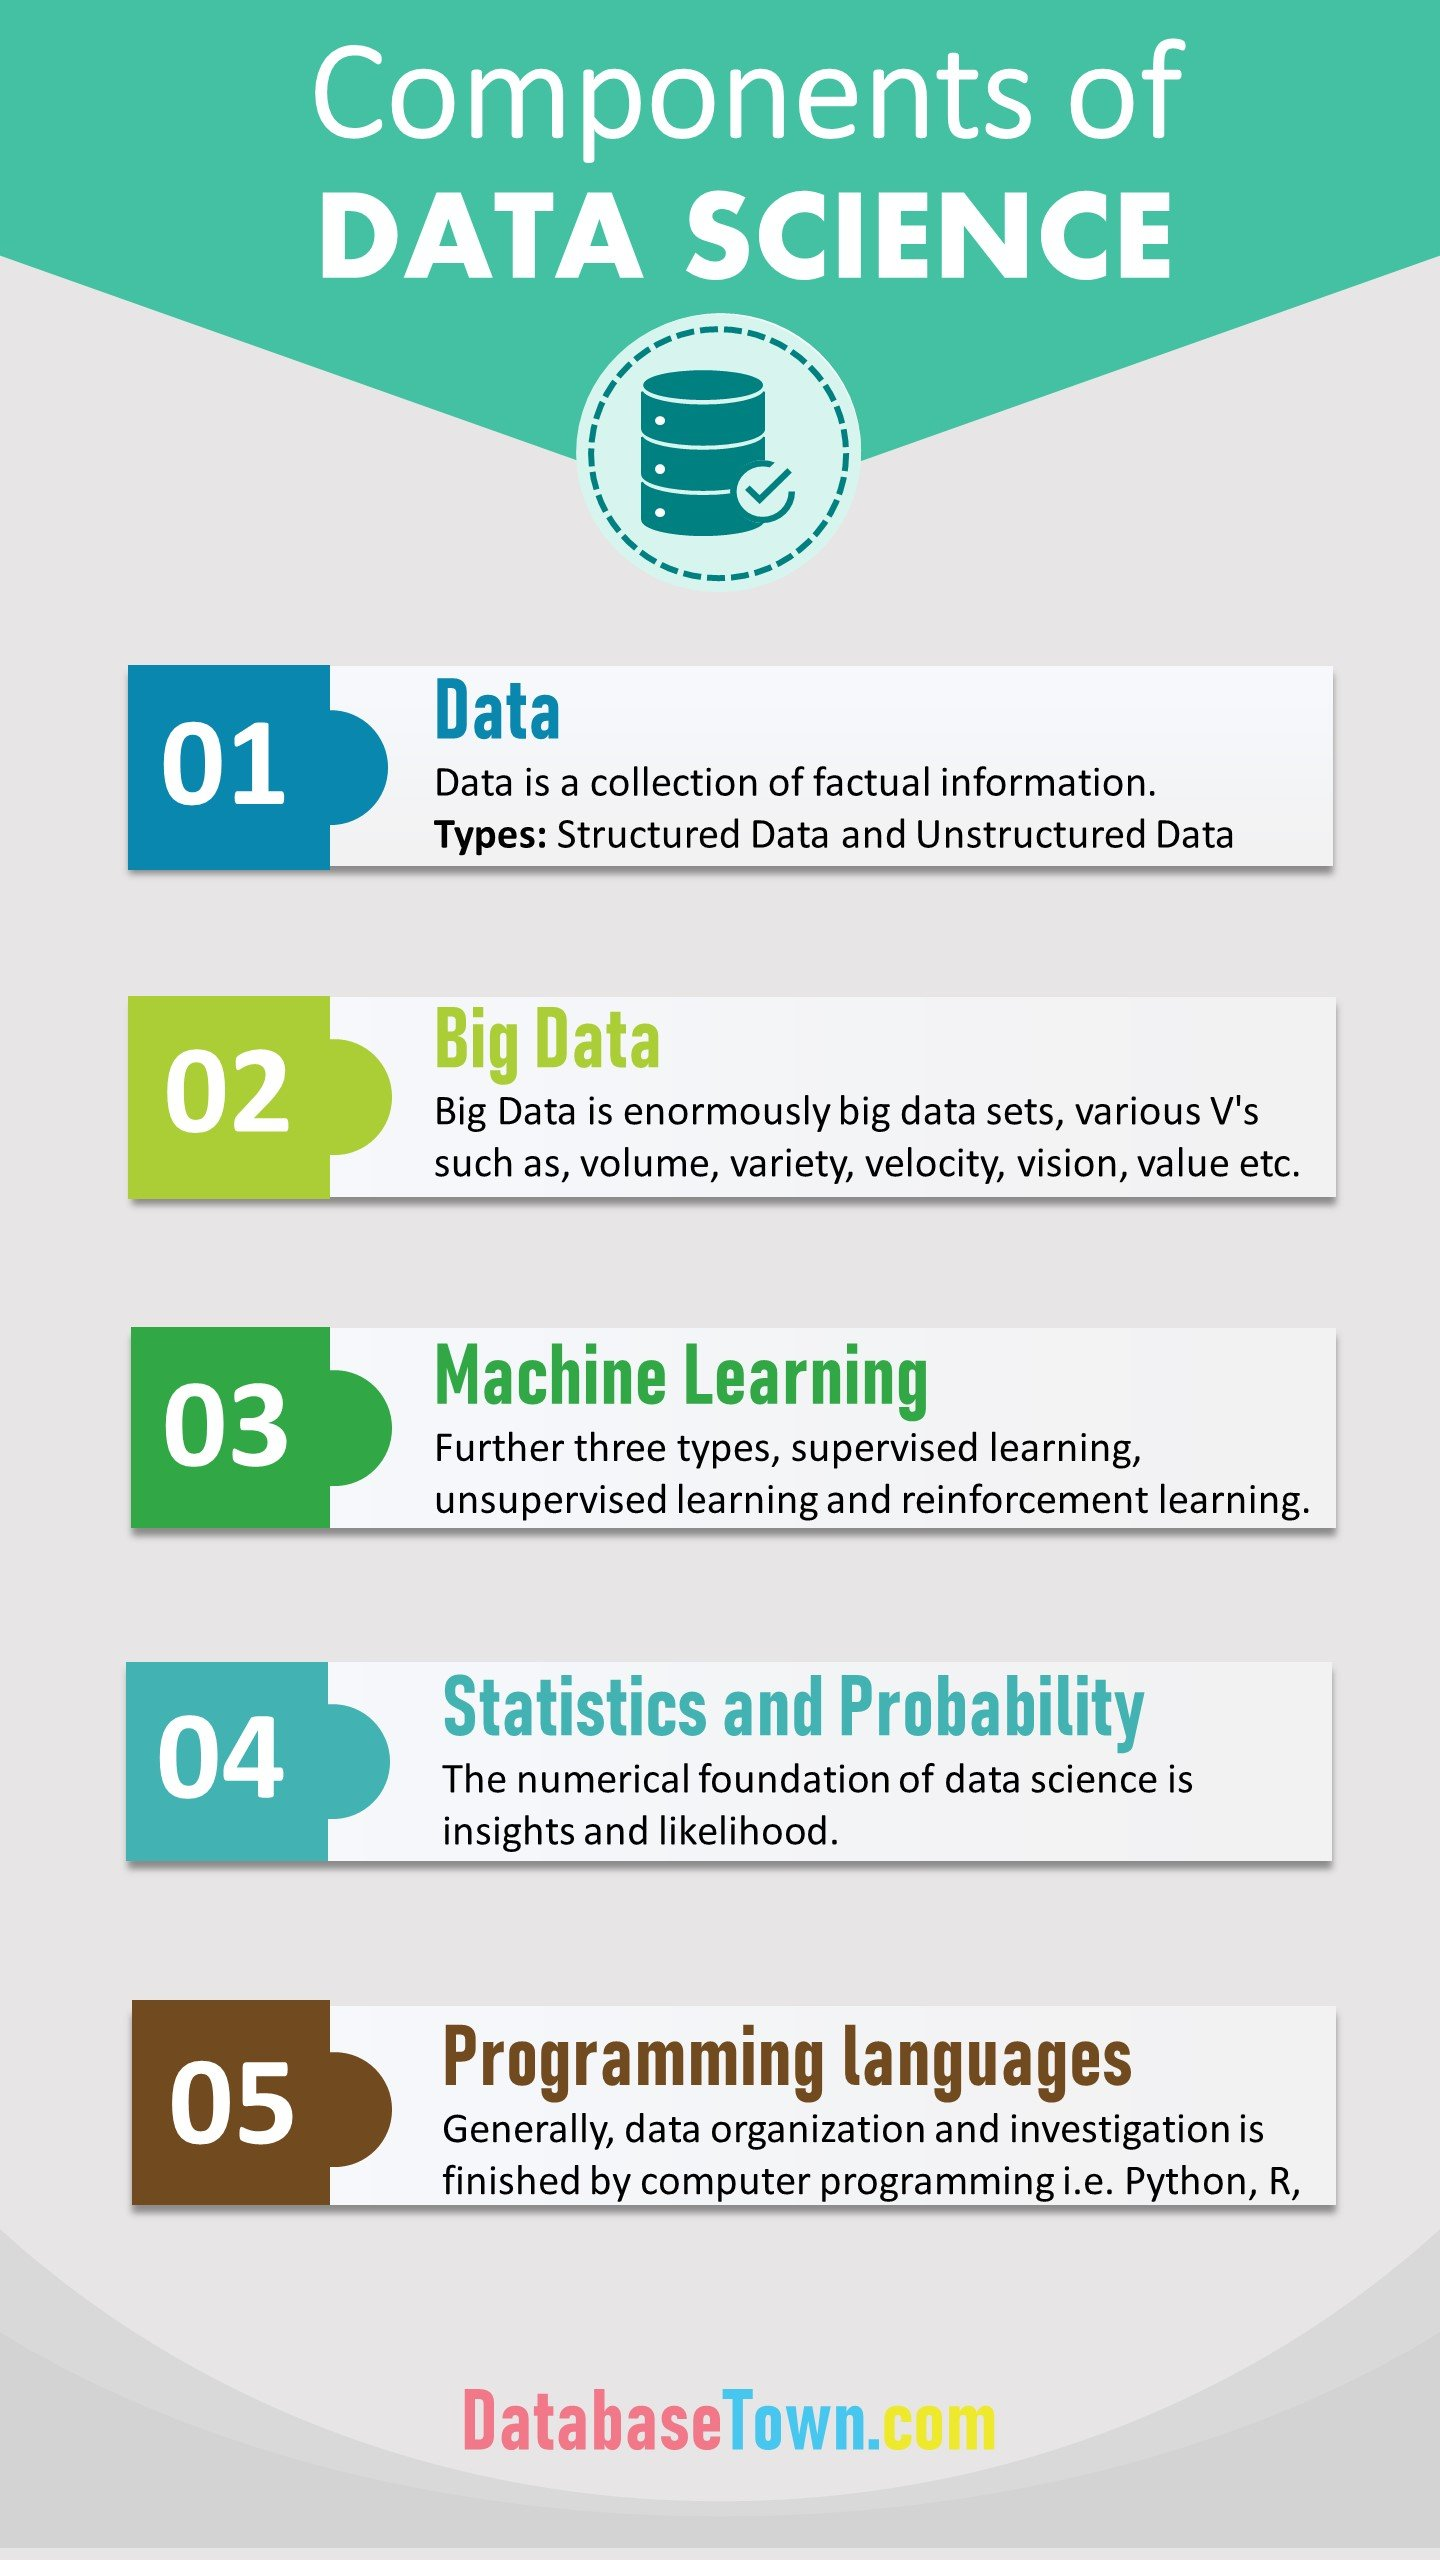 Components of data science infographic